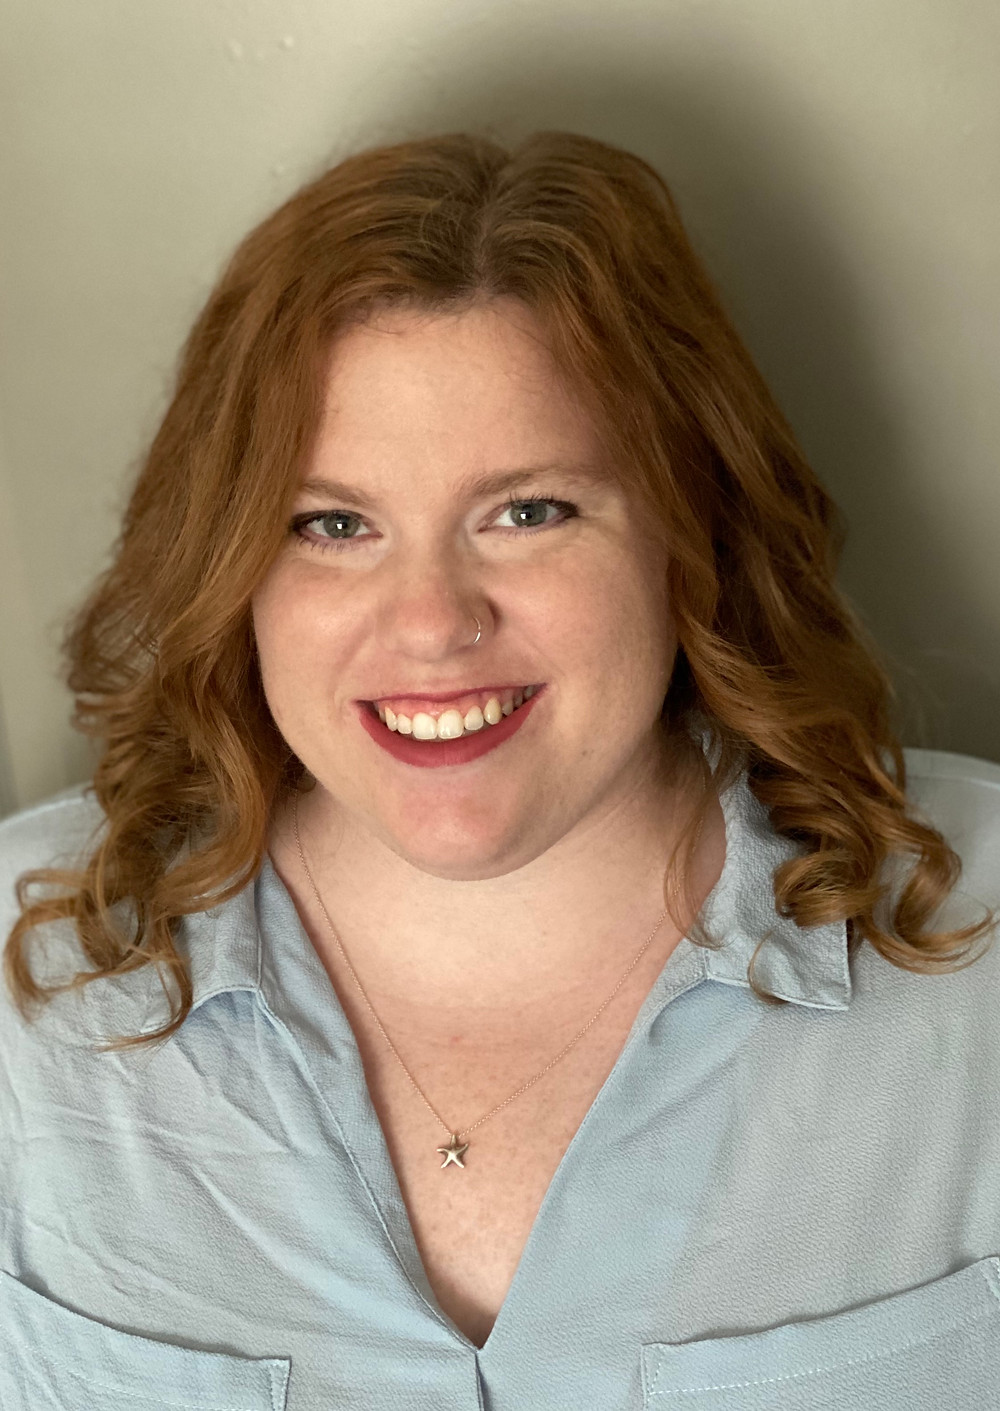 A headshot of Aly Trevino- October Member of the Month